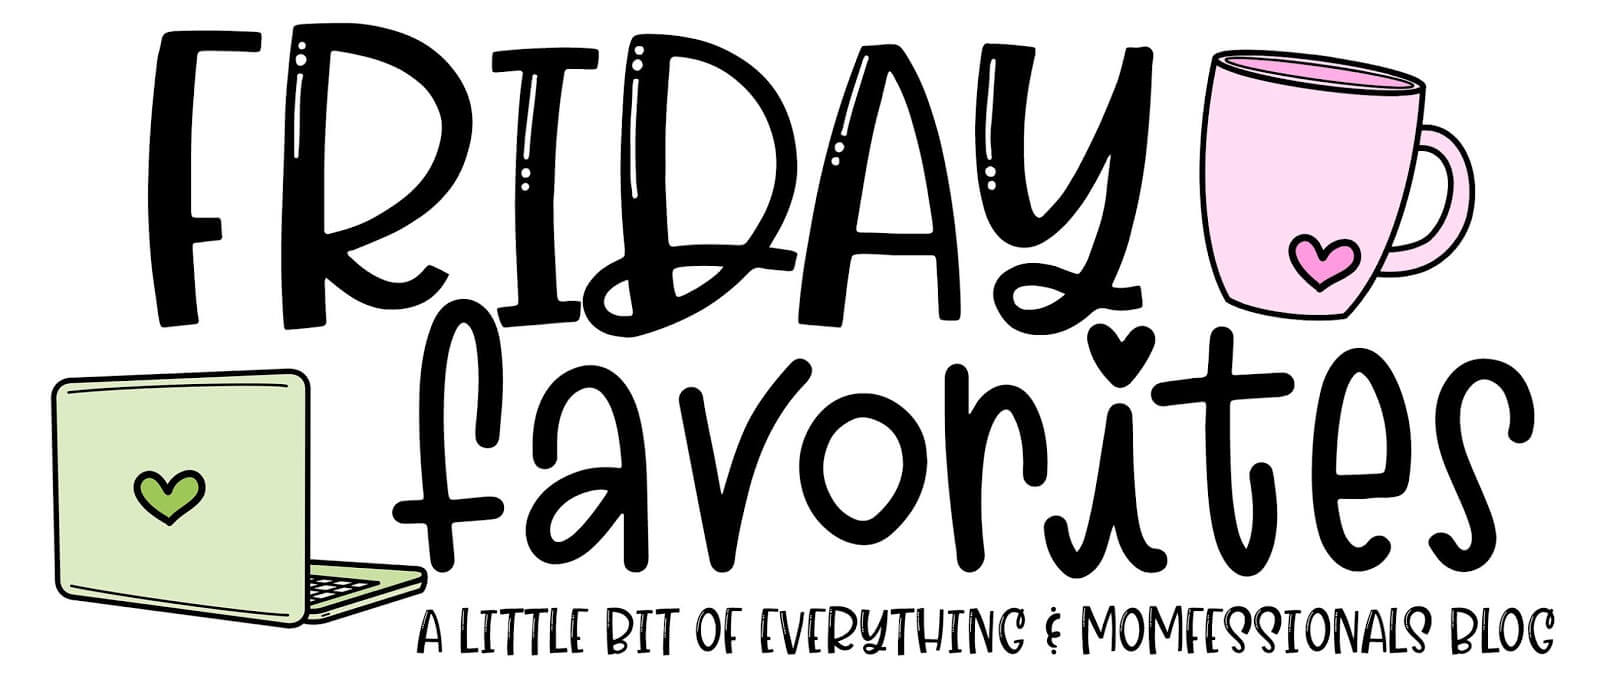 Friday favourites graphic